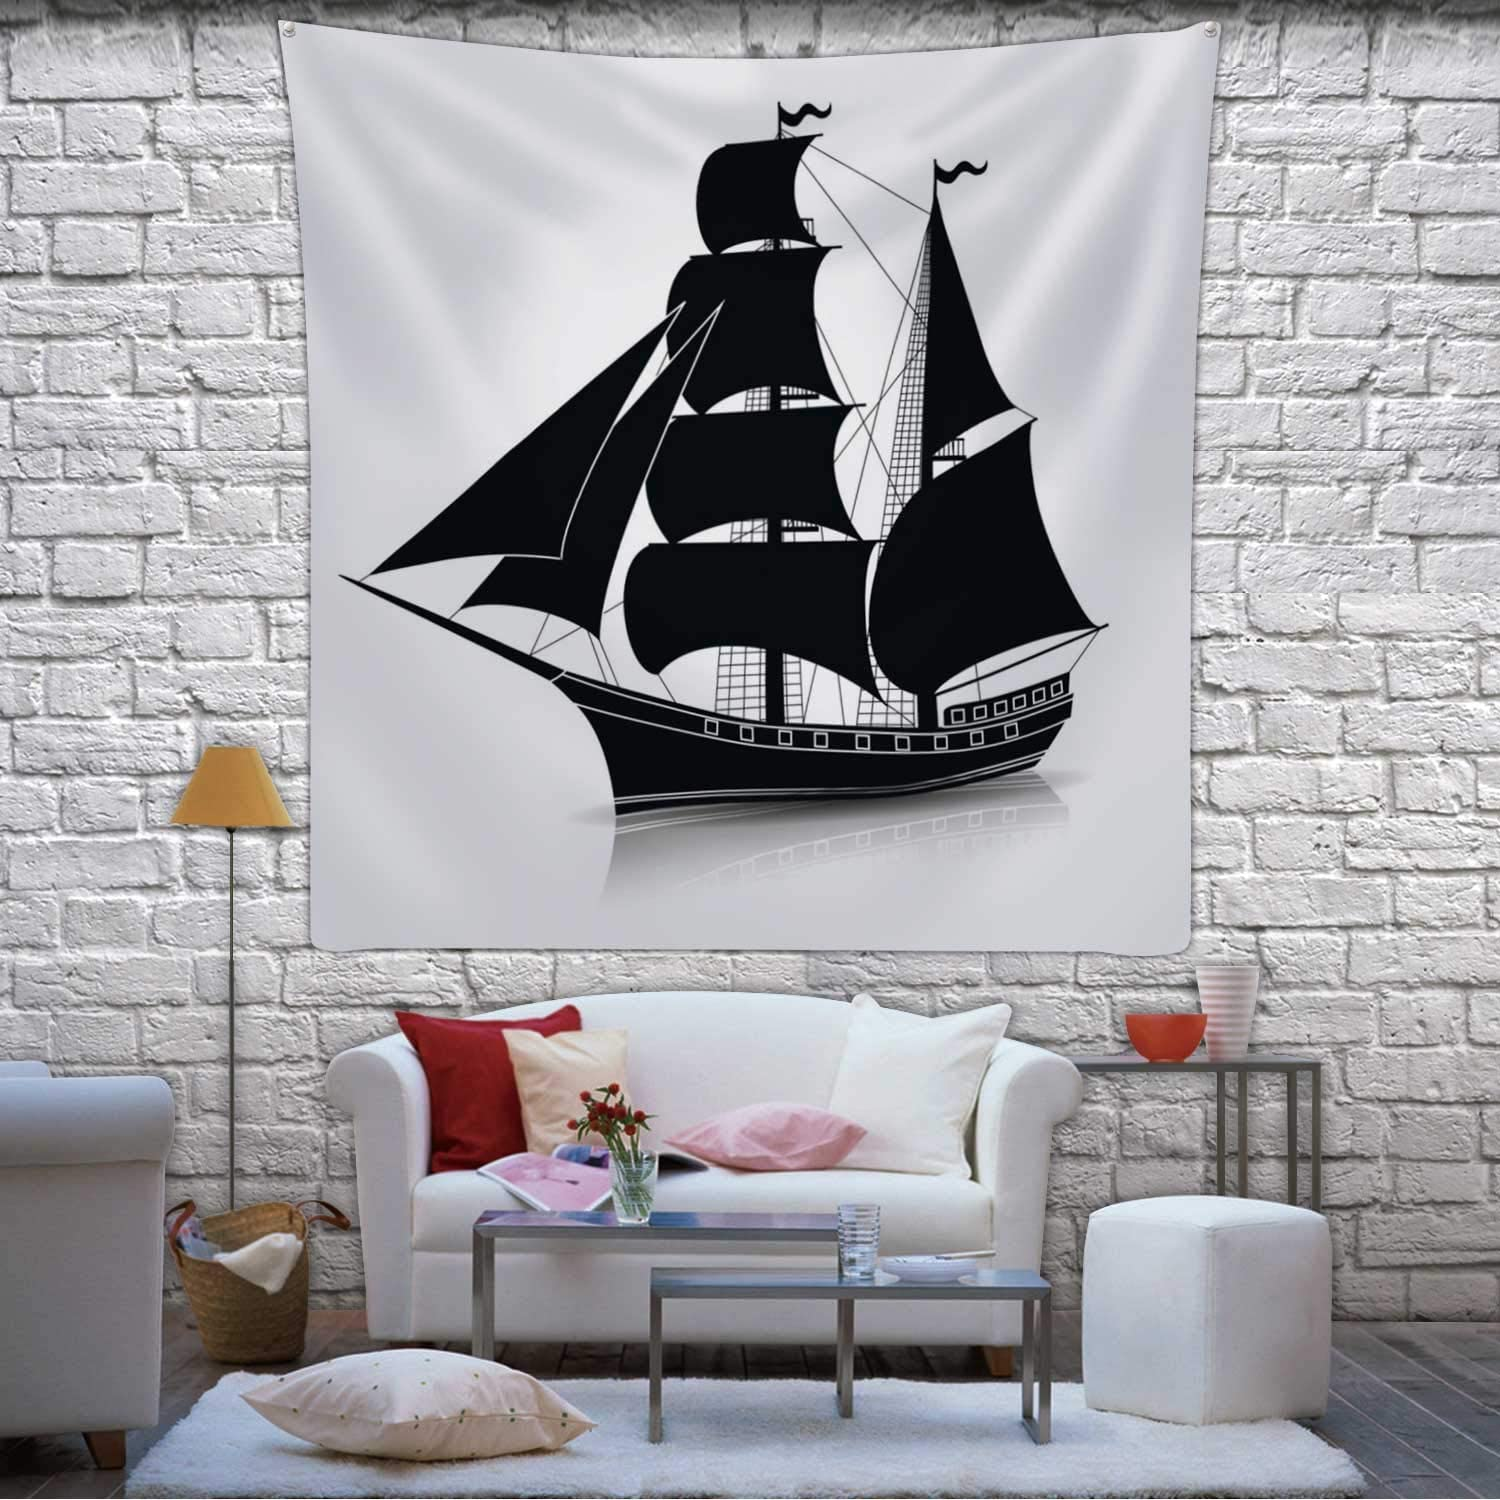 Hitecera Silhouette Vintage Sailing Ship with Reflection Wall Hanging,063097 Bedding Tapestry,59.1x59.1inch